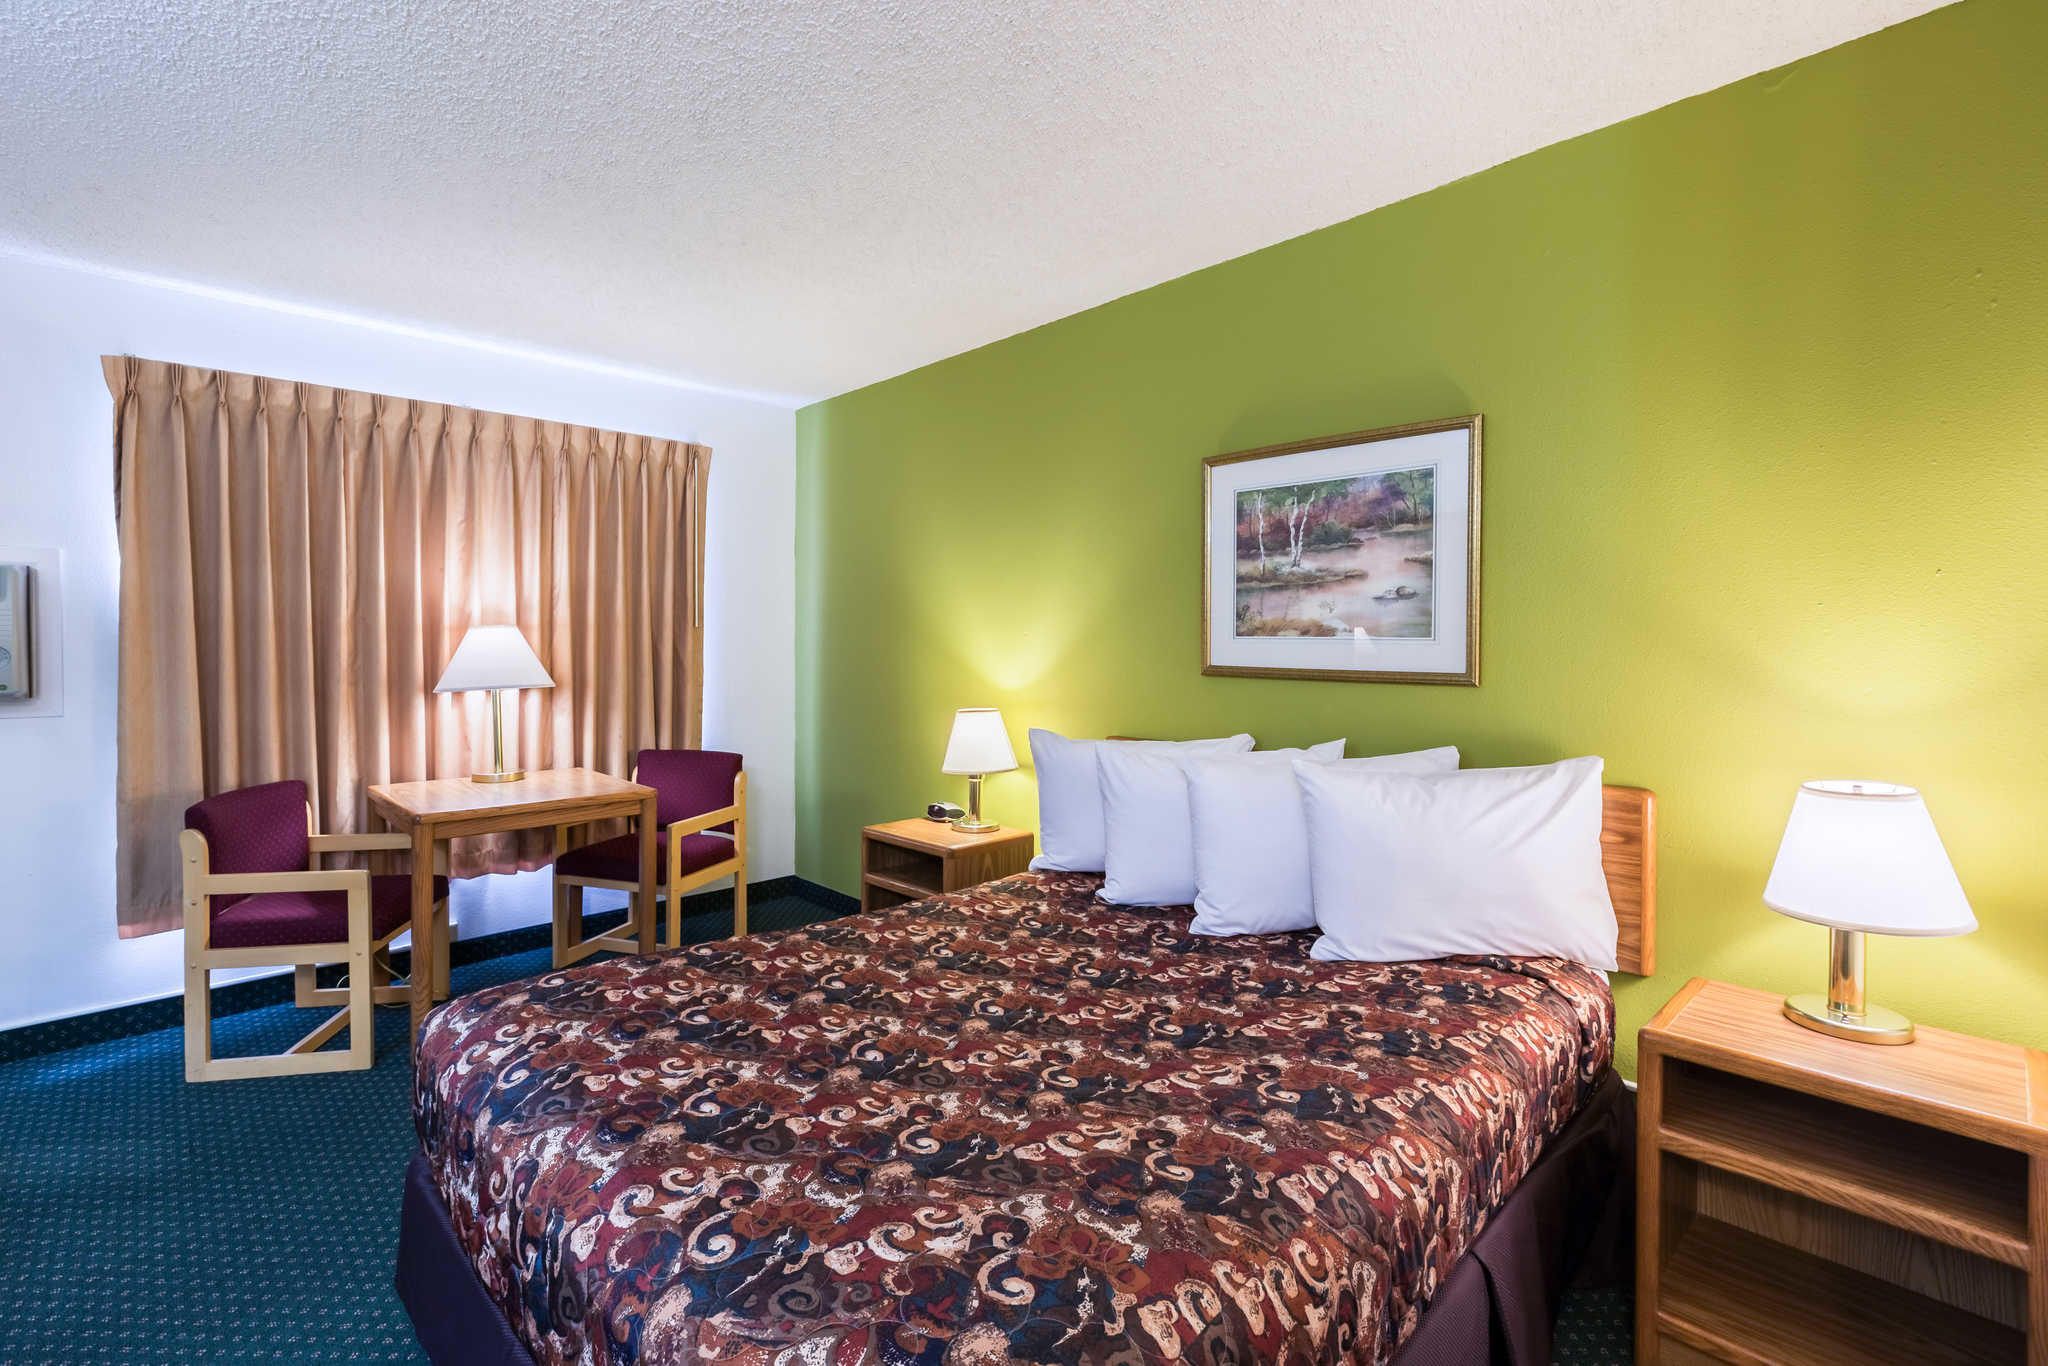 The Rodeway Inn Hotel In Grand Island Nebraska Provides Excellent  Accommodations, A Convenient Location And Affordable Rates To Everyone  Visiting The Grand ...